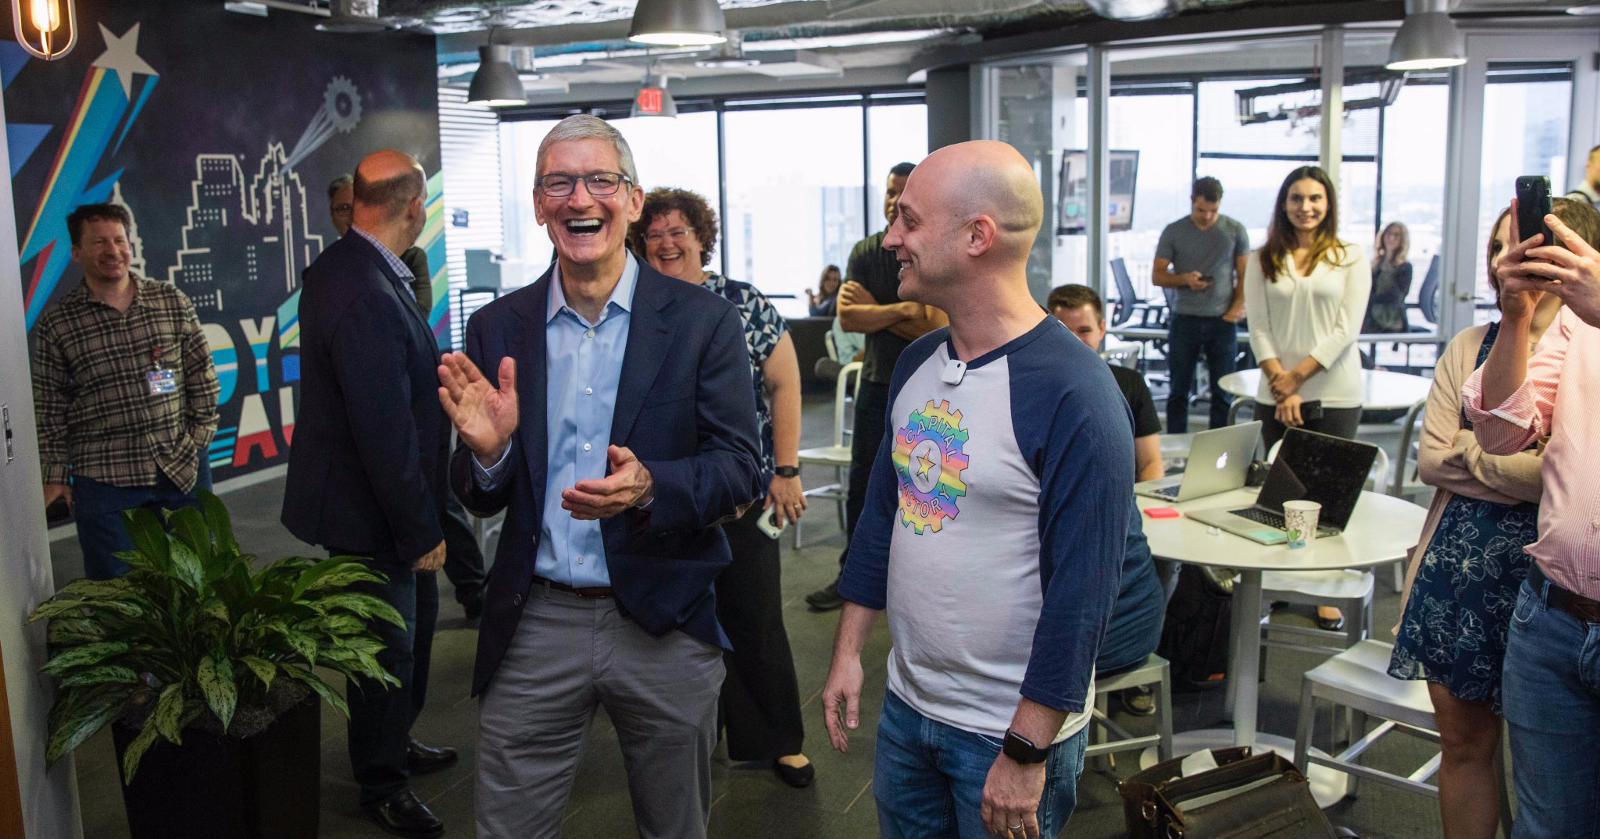 Thrilled by the response apple ceo tim cook said in a tweet that it - Thx Joshuabaer For A Fantastic Morning Capitalfactory Developer Creativity Is Off The Charts We Re As Excited About Ios 11 As You Are Pic Twitter Com